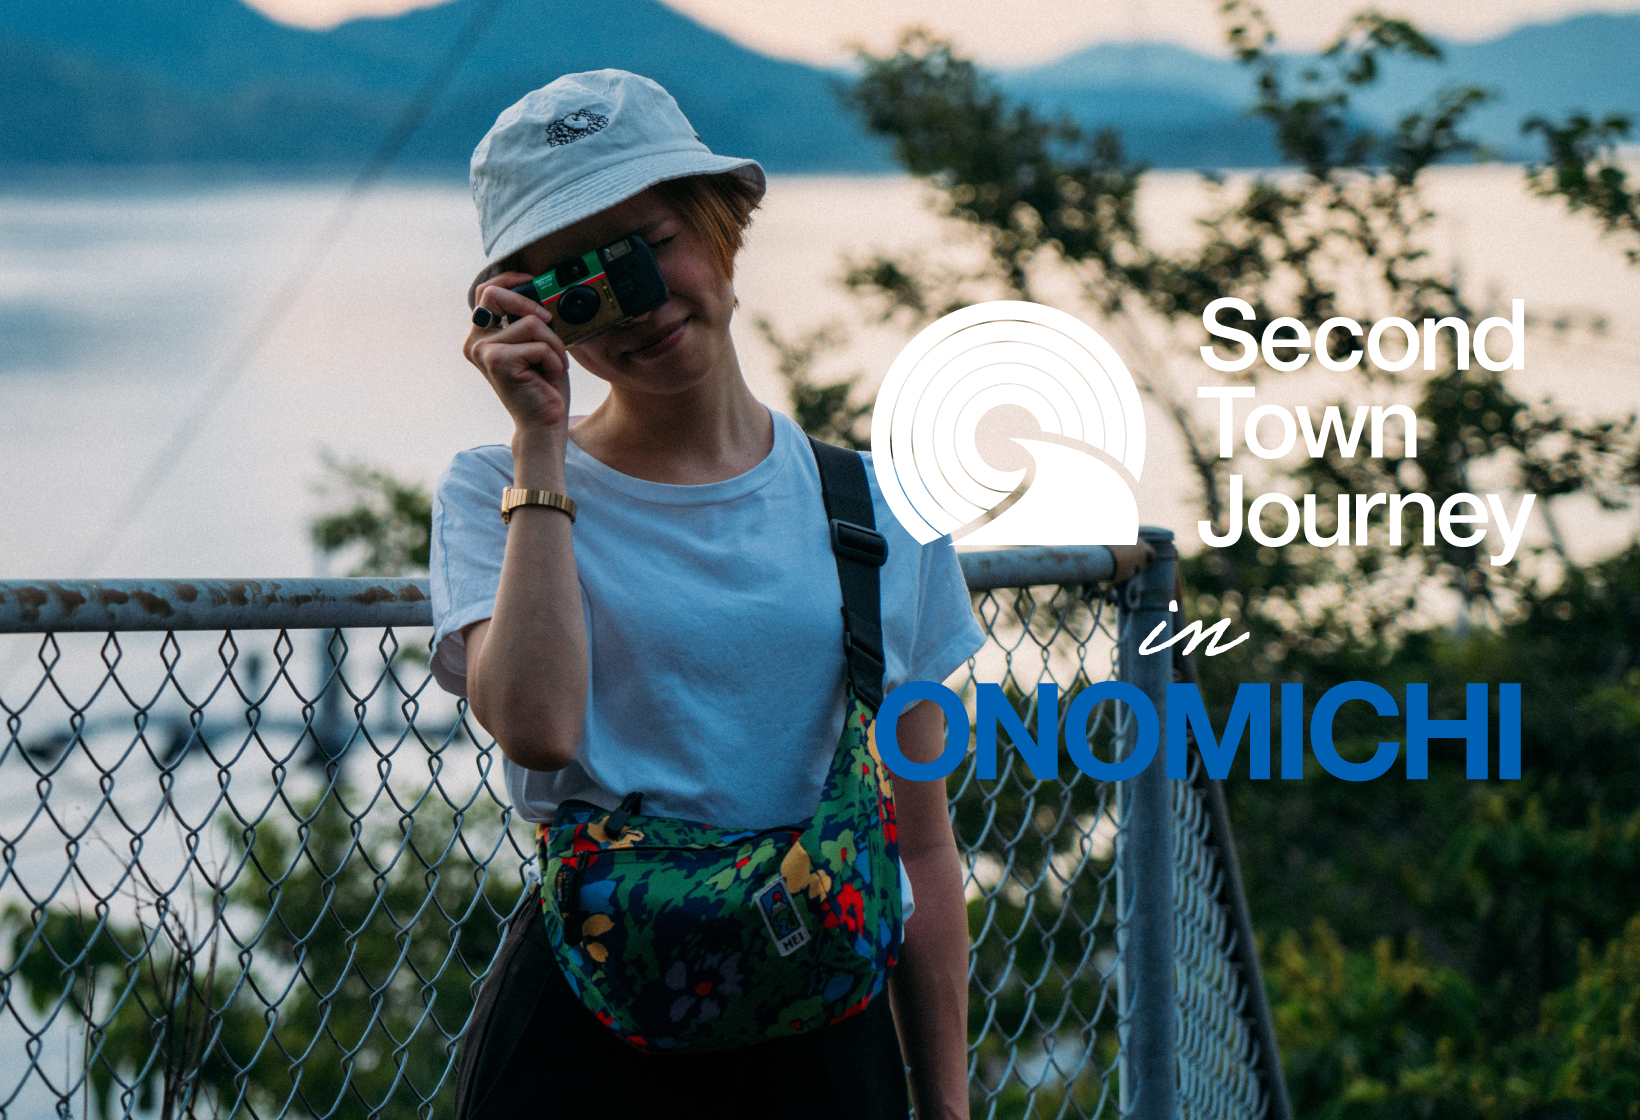 Second Town Journey in ONOMICHI(尾道)